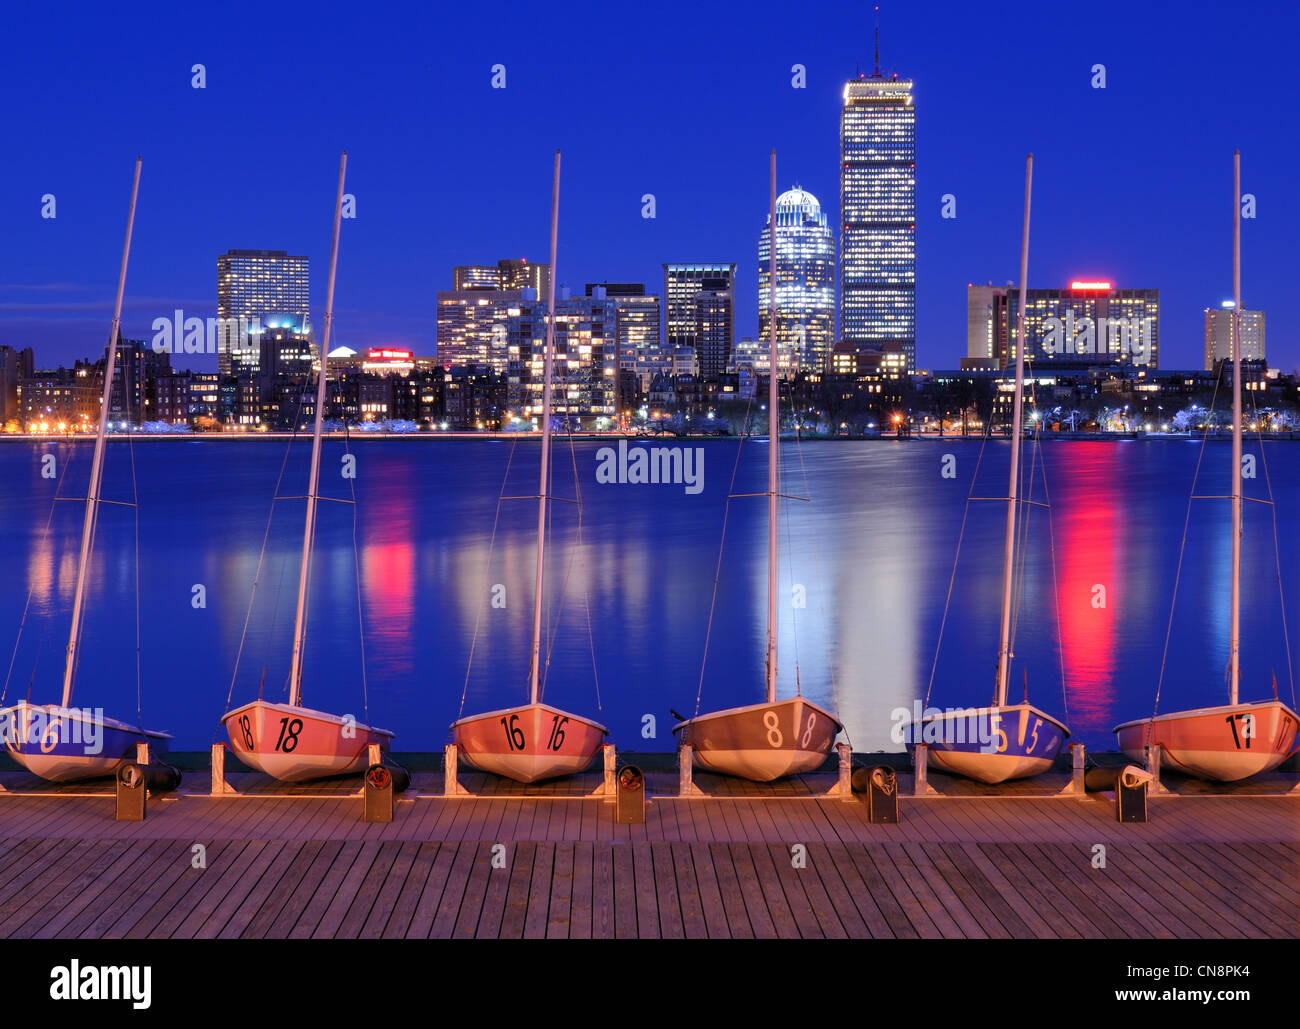 Docked boats against the cityscape of Back Bay Boston, Massachusetts, USA from across the Charles River. - Stock Image